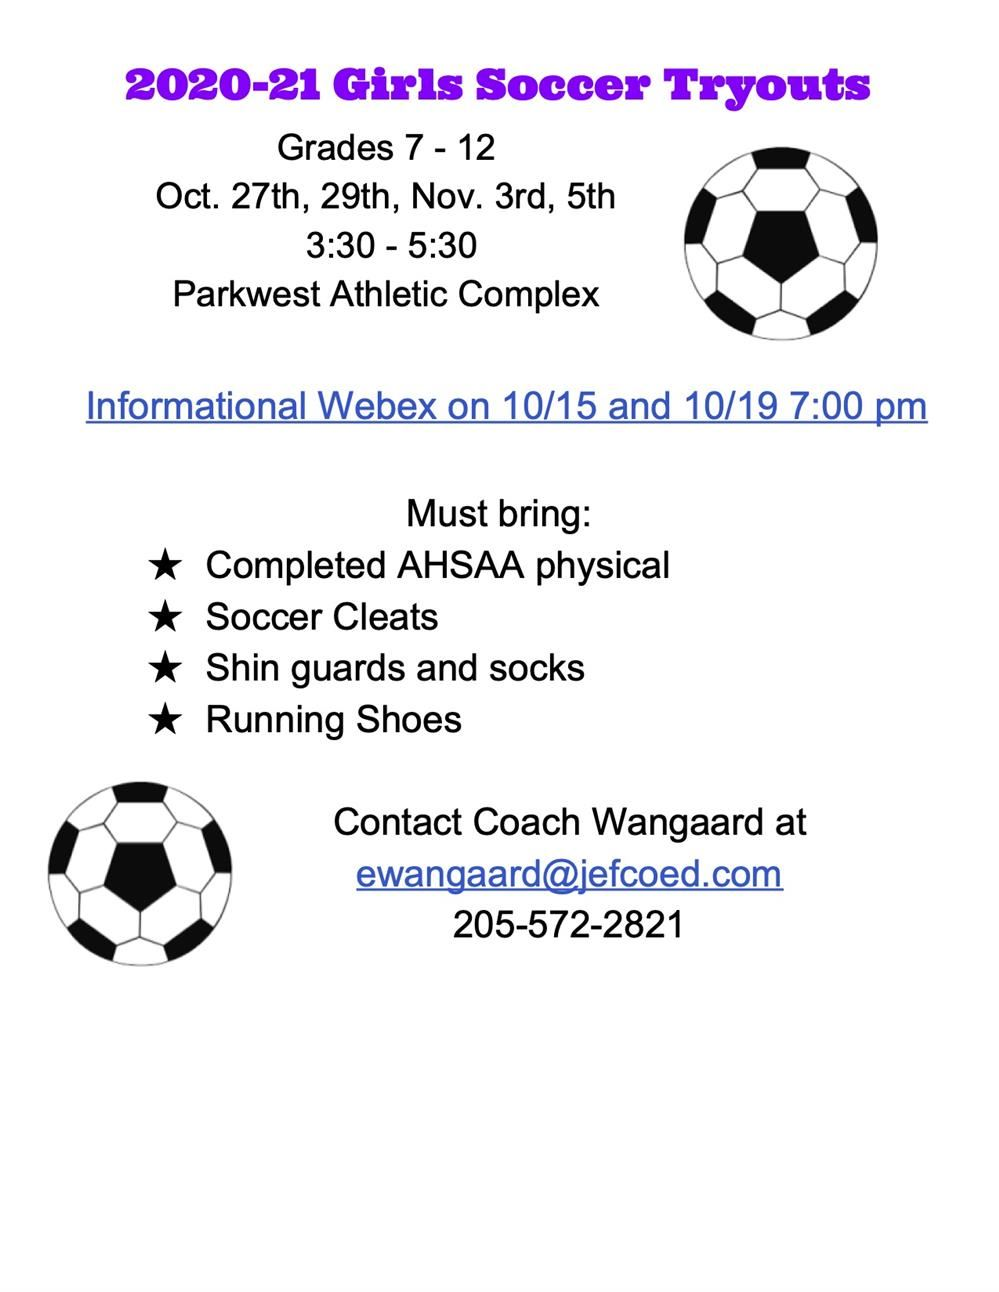 2020-2021 Girls Soccer Tryouts